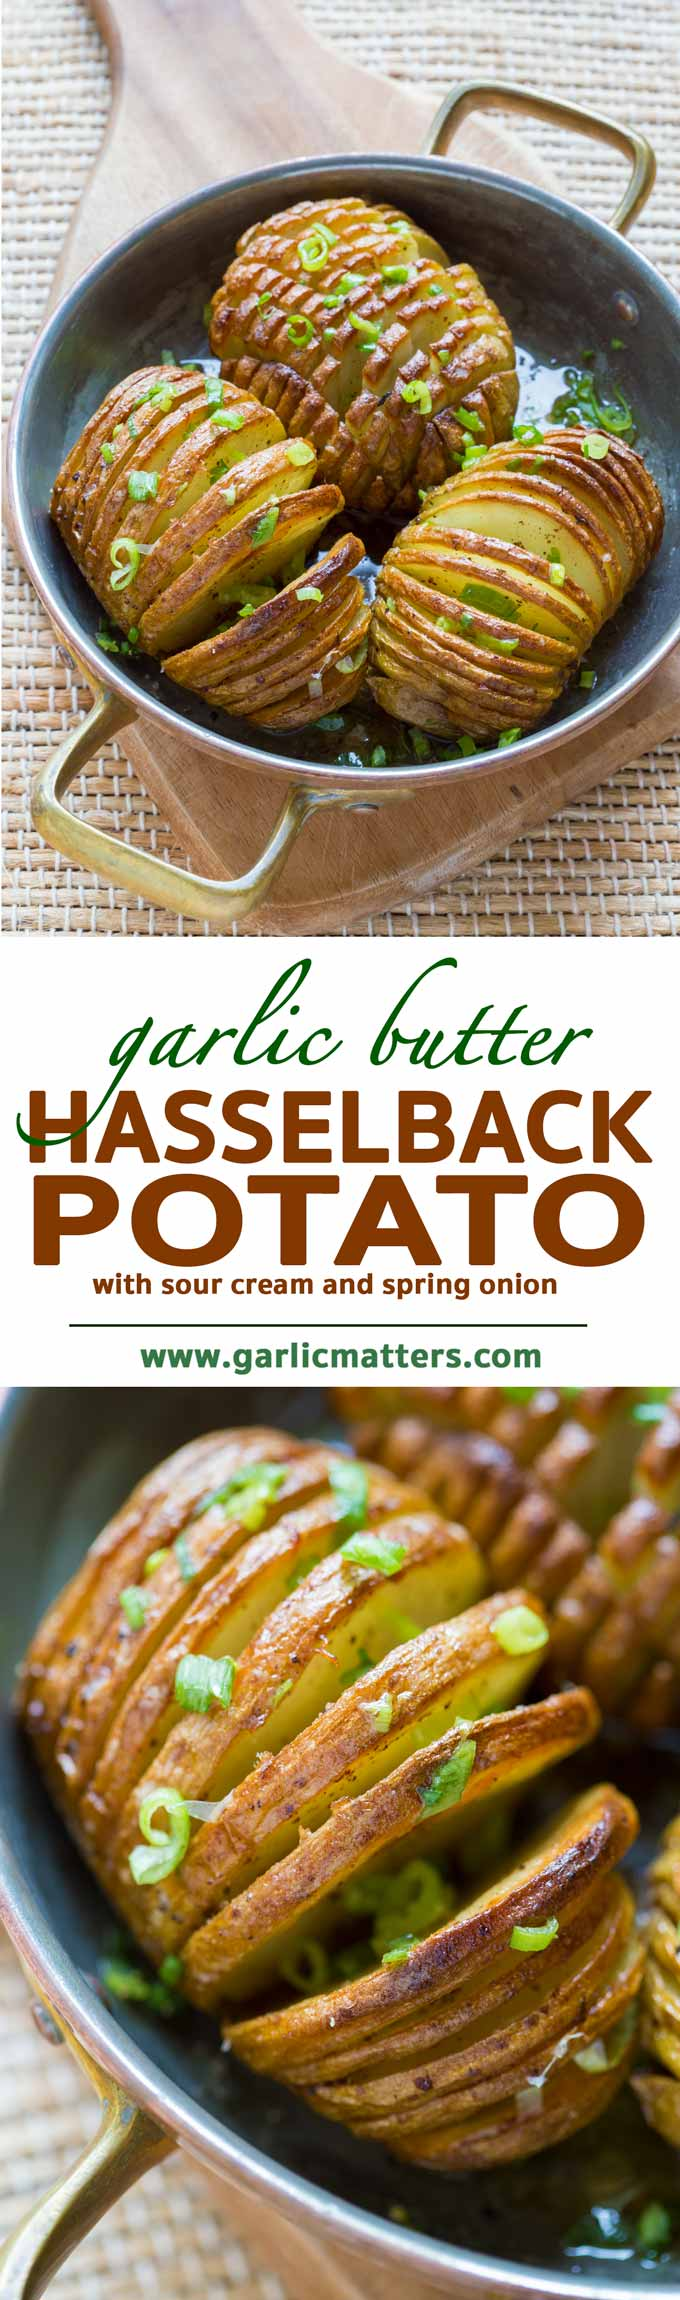 Garlic Butter Hasselback Potato Recipe - vegetarian, simple and tasty. Enjoy as a side dish or main course. Ready in 60 minutes.